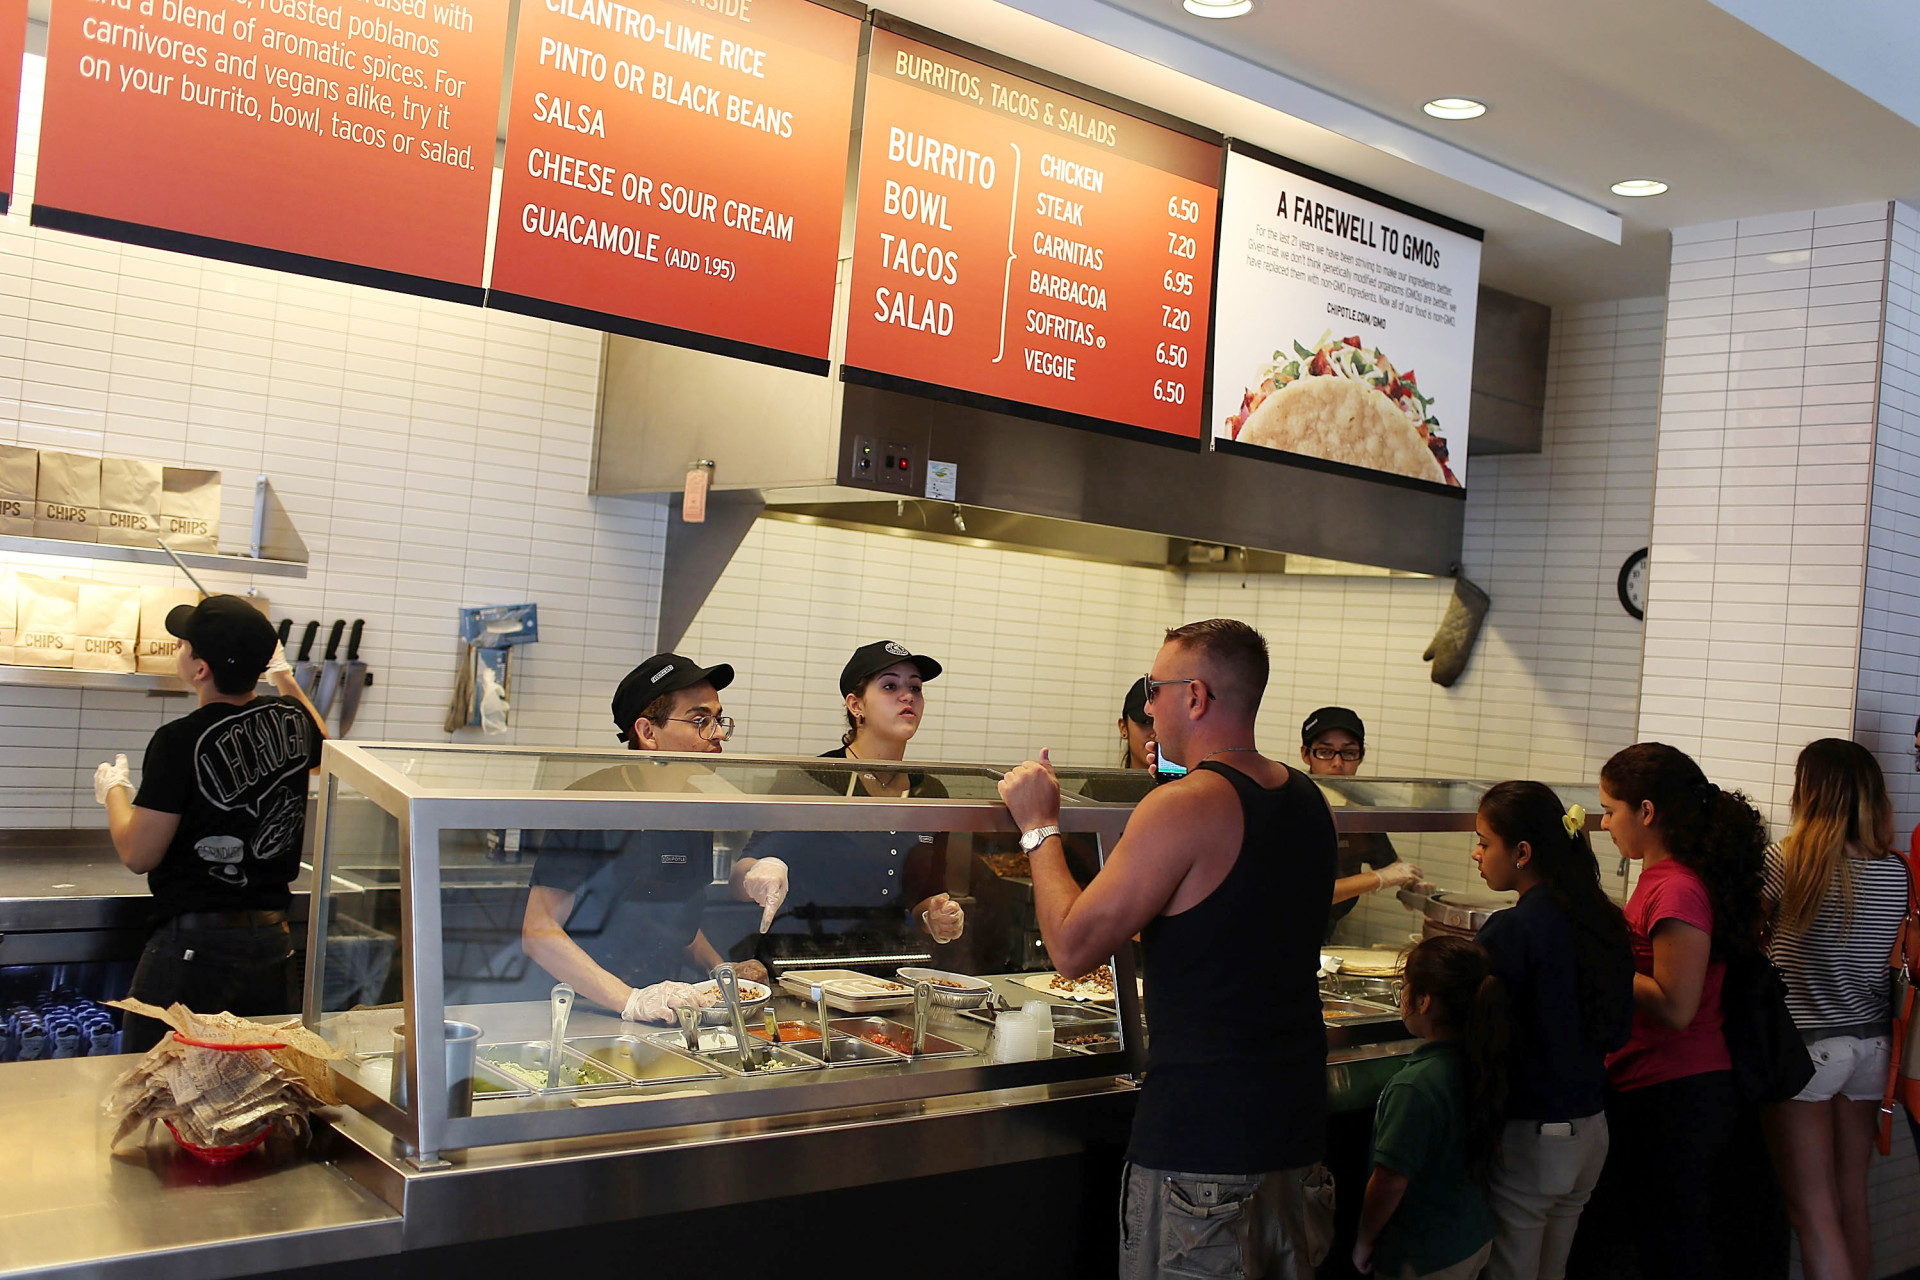 Chipotle restaurant workers in Miami, Fla., fill orders on Apr. 27, the day that the company claimed it would only use non-GMO ingredients in its food.